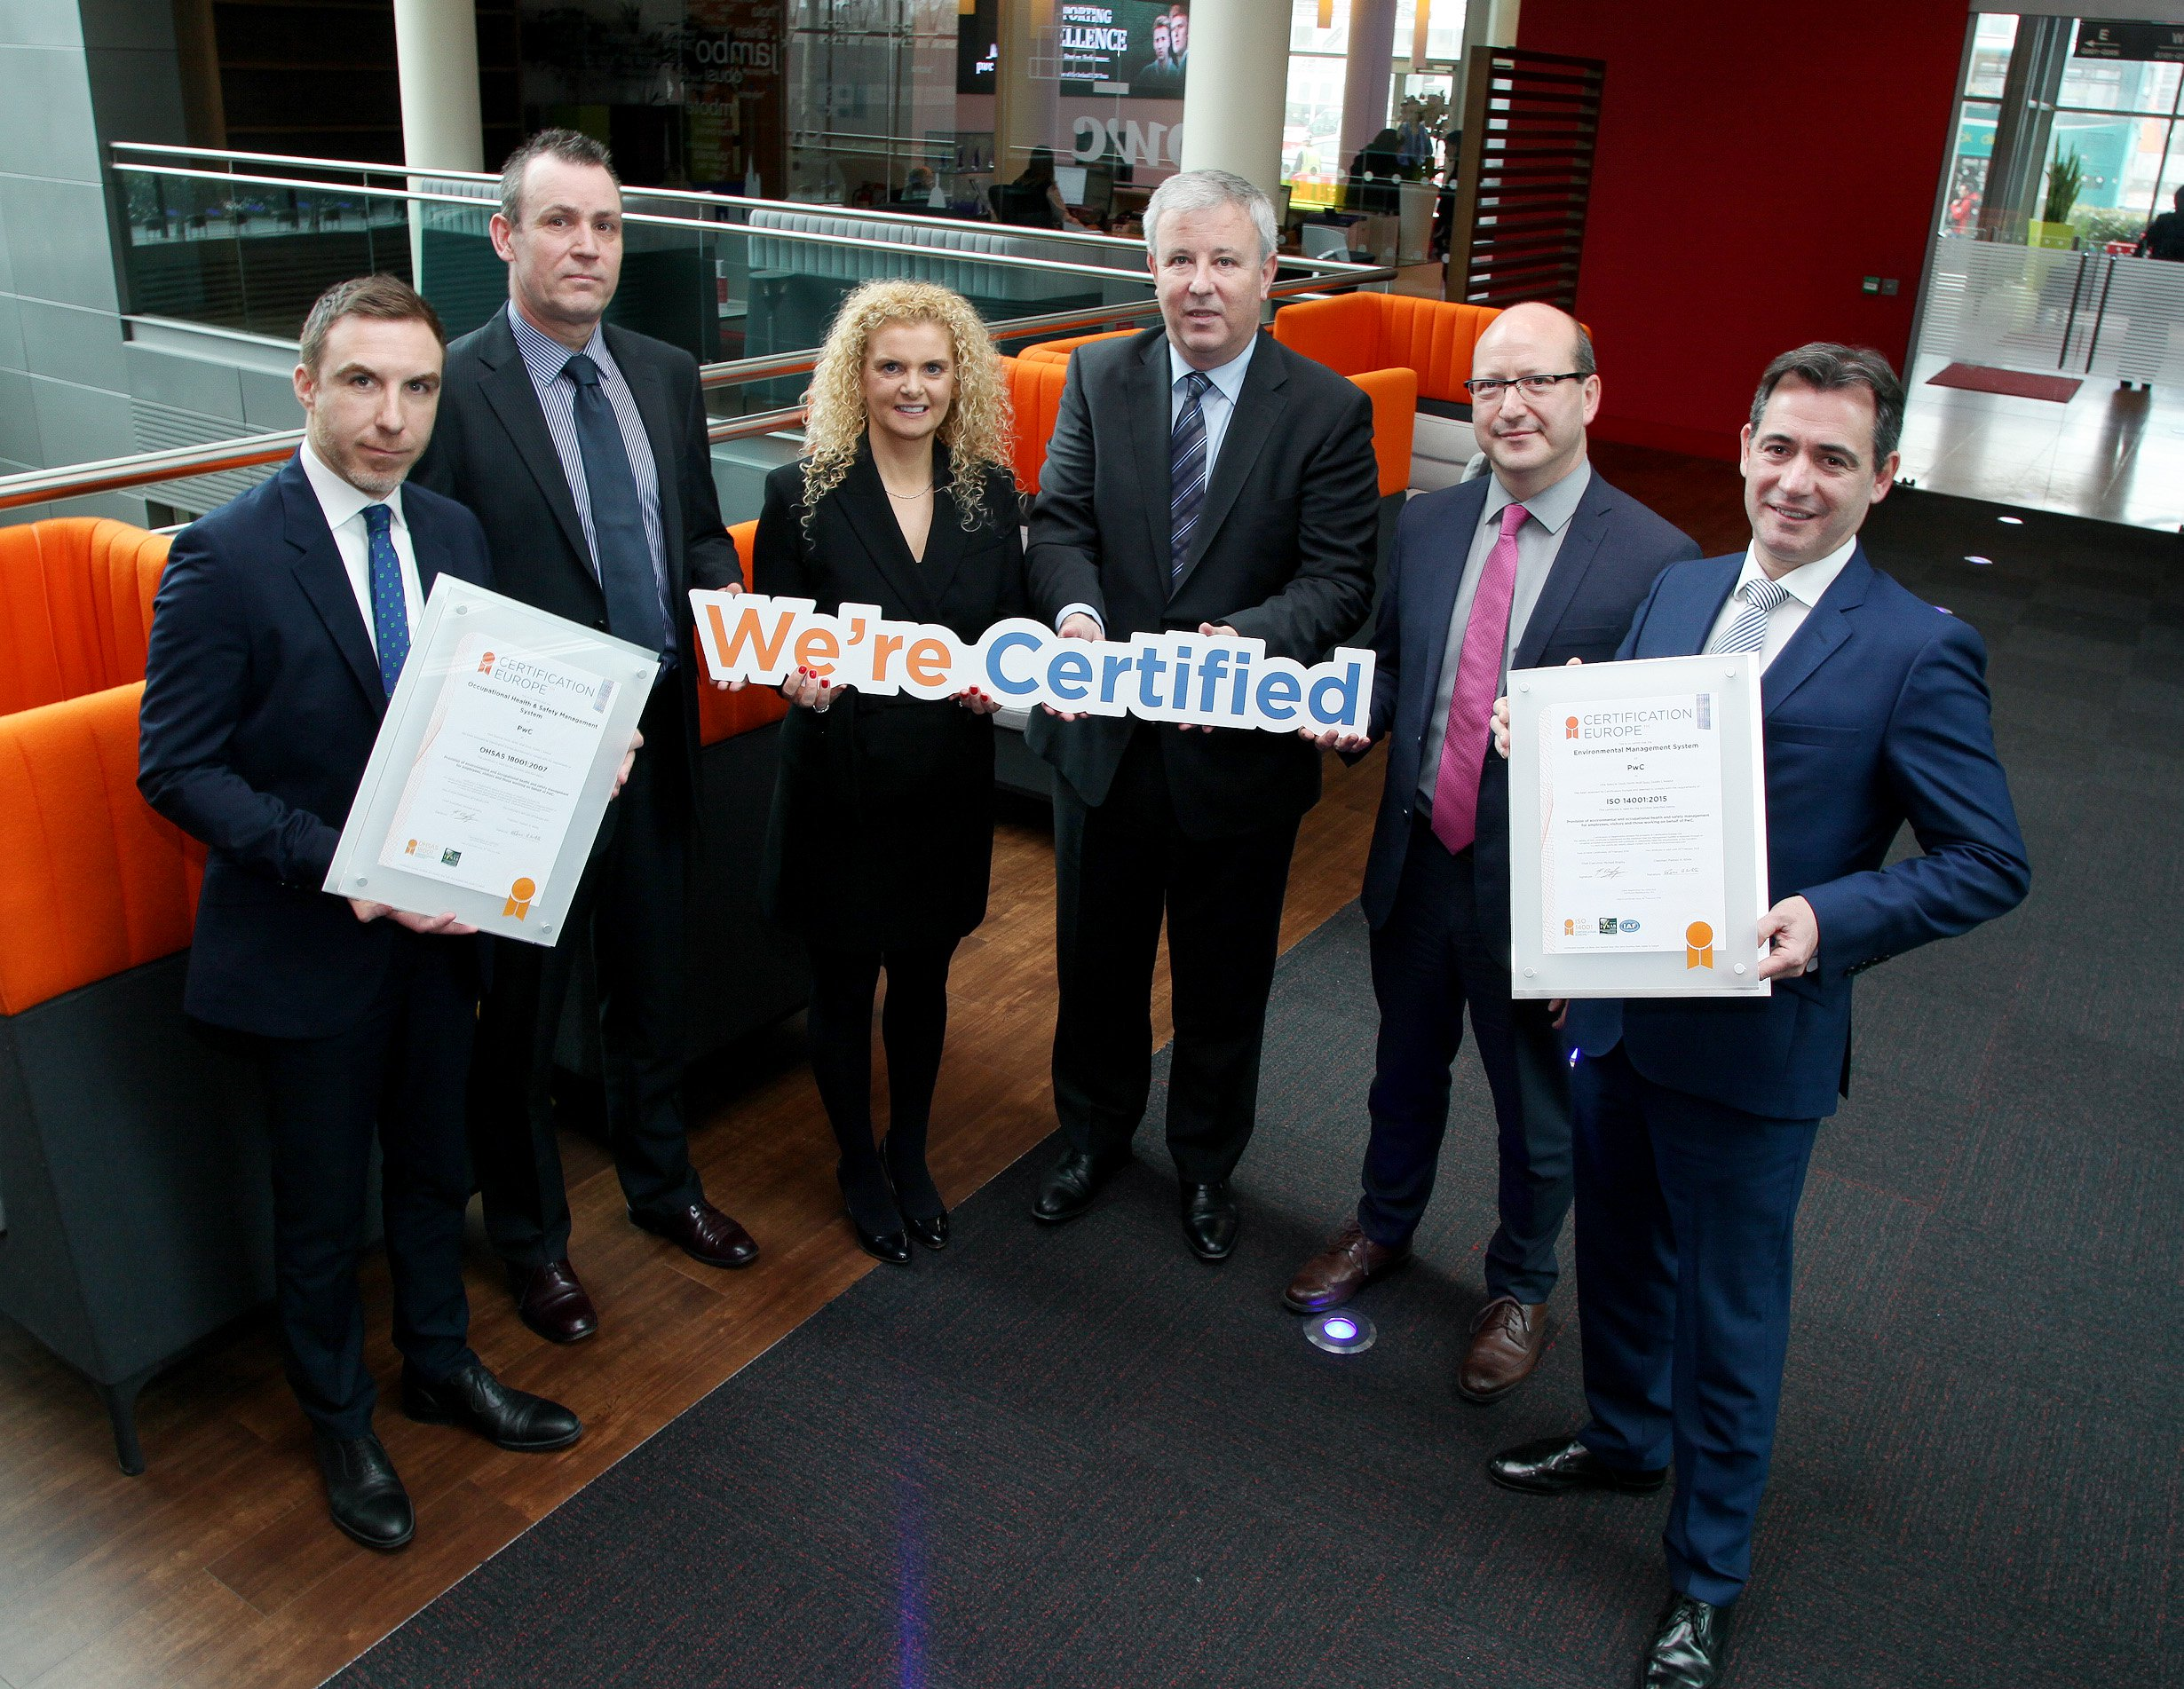 PwC Ireland awarded ISO 14001 & OHSAS 18001 Certification